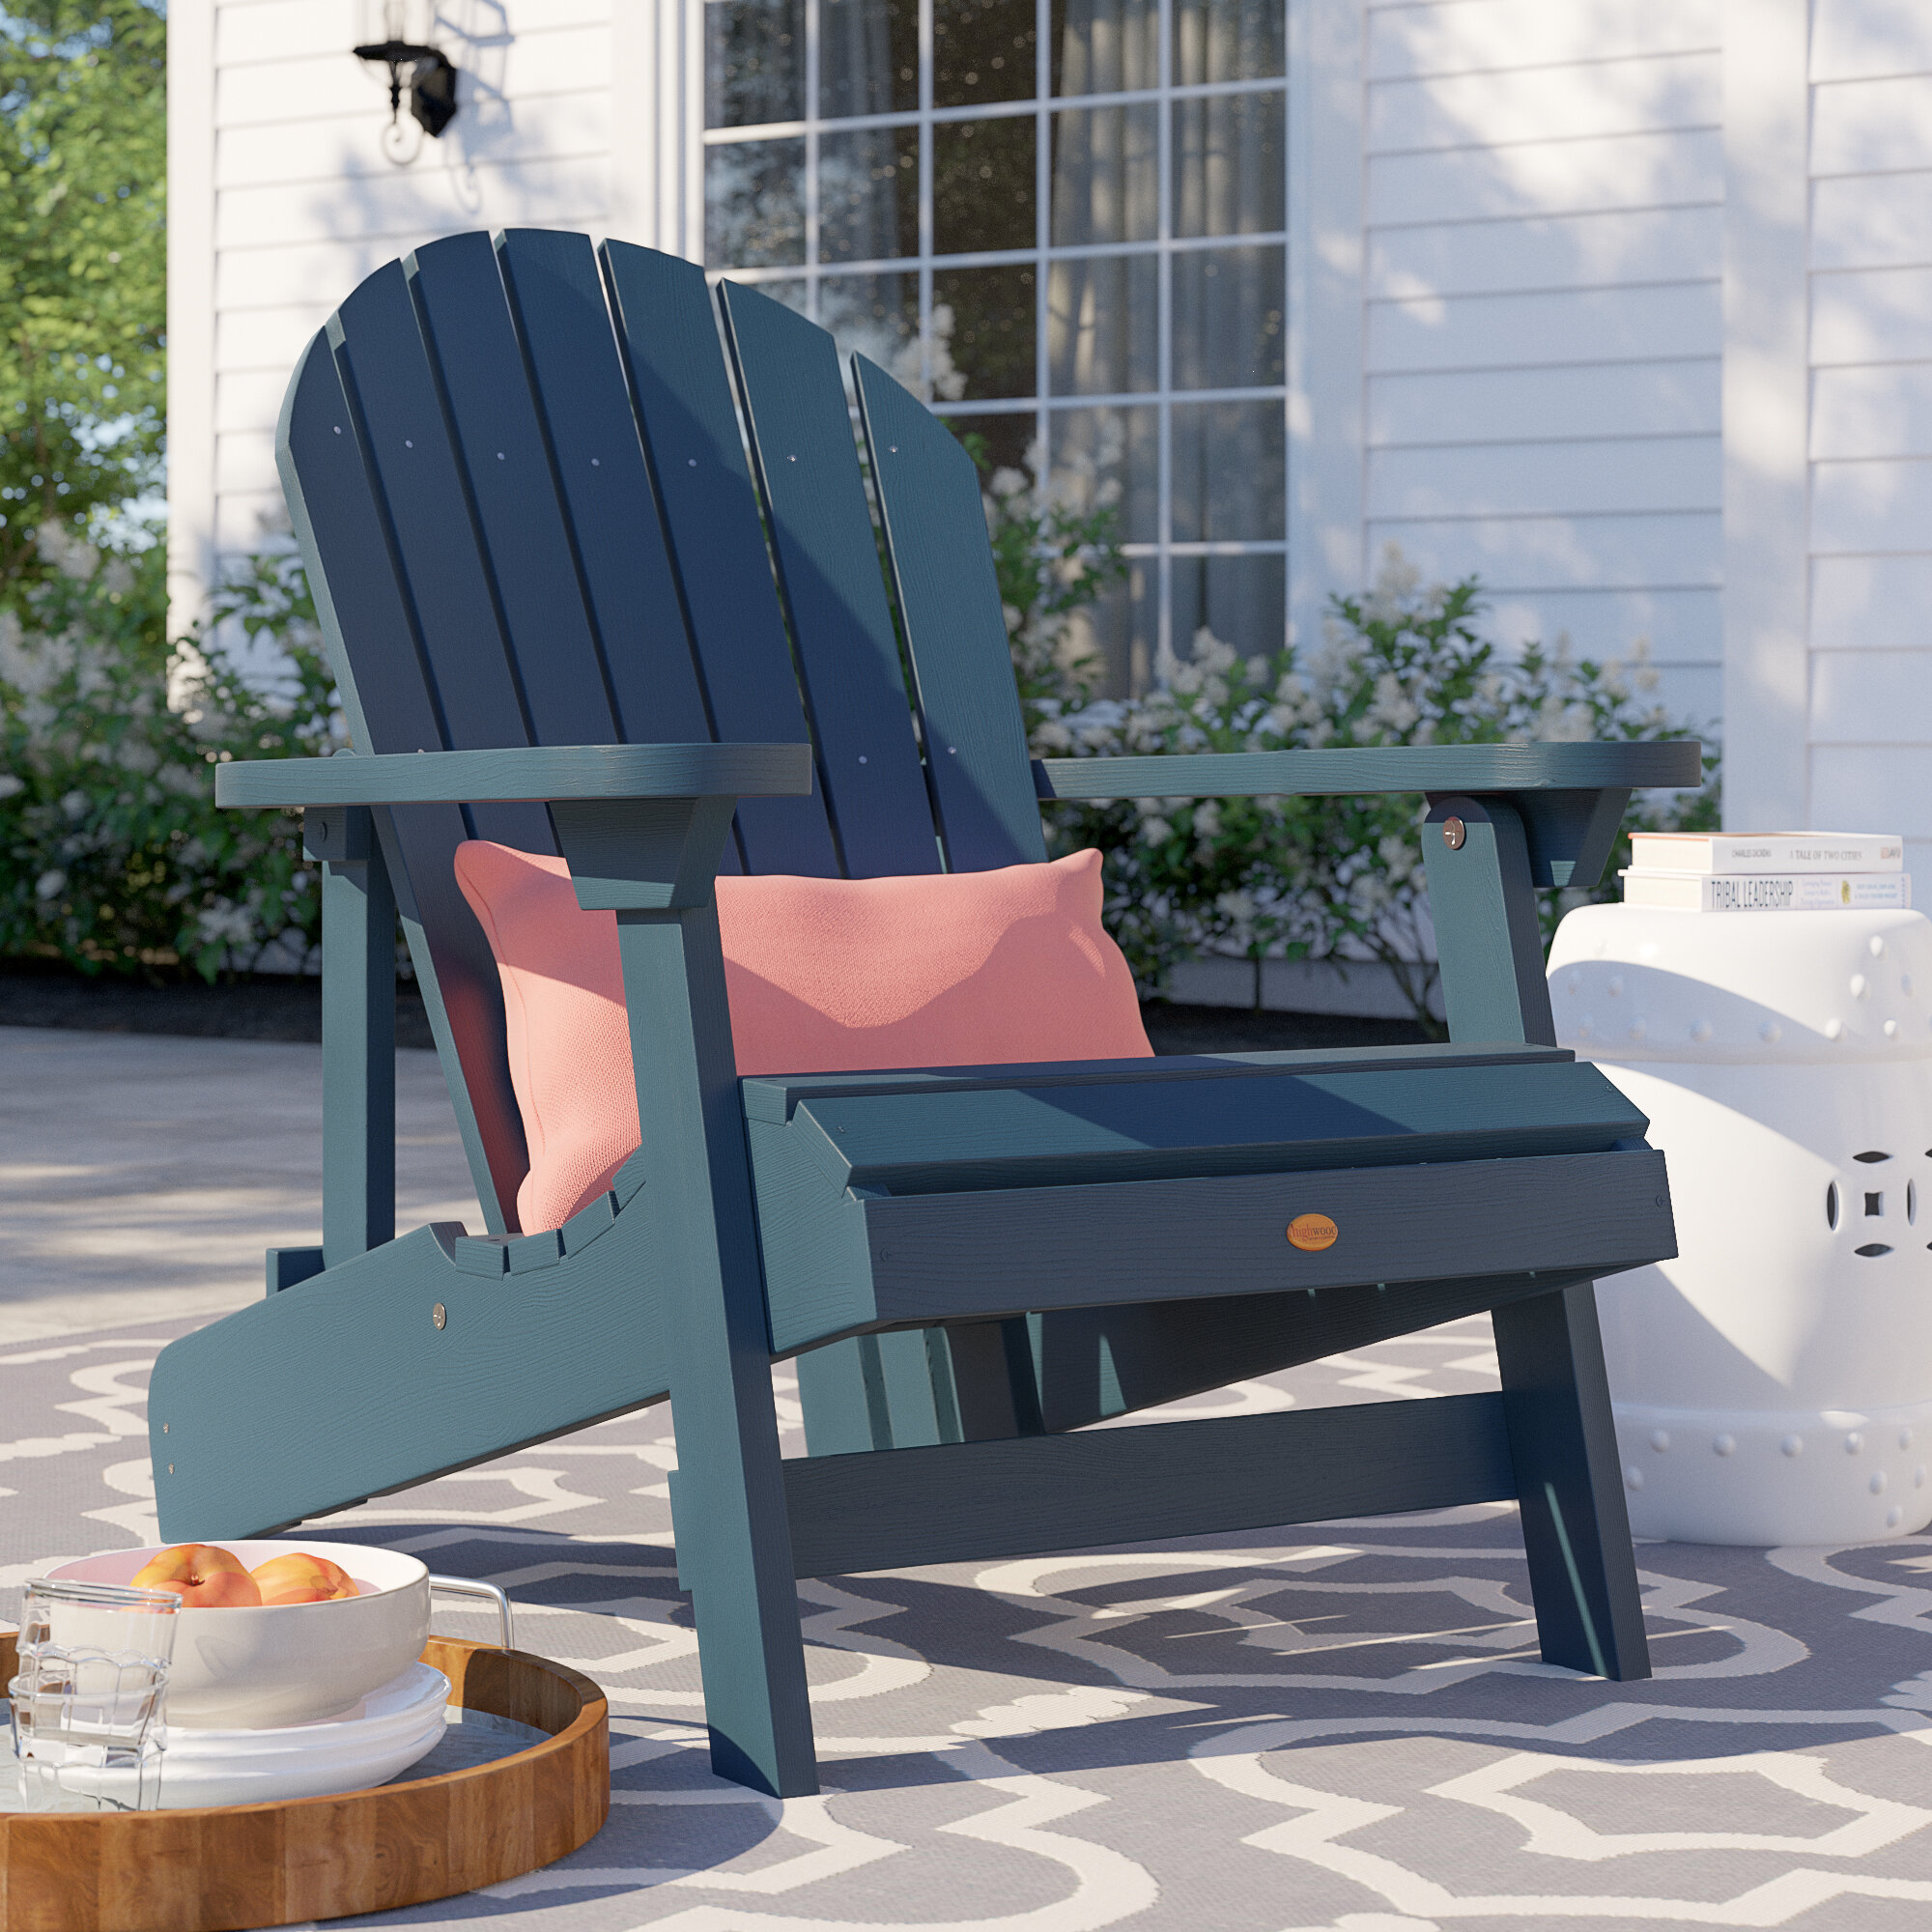 Patio Furniture Portsmouth Nh.Anette Plastic Folding Adirondack Chair